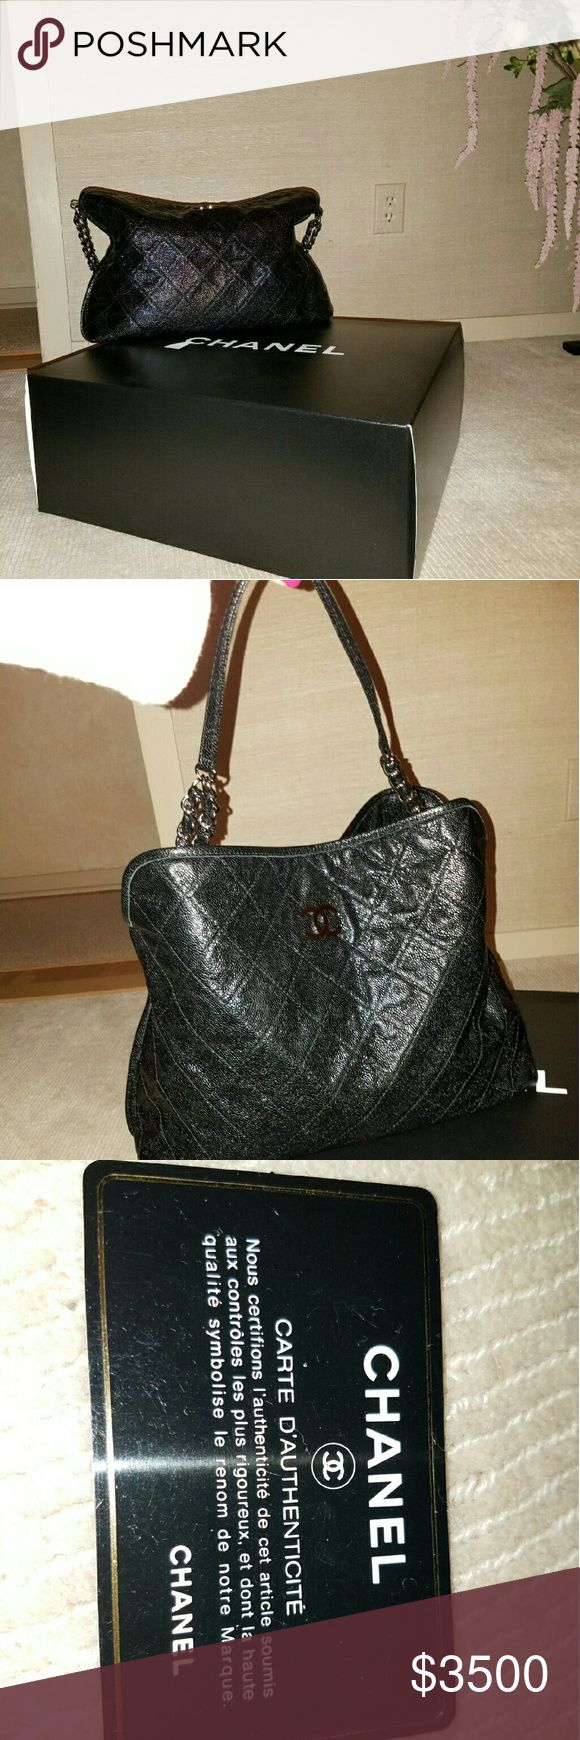 Chanel Bag Black quilted leather, chain handle CHANEL Bags Shoulder Bags